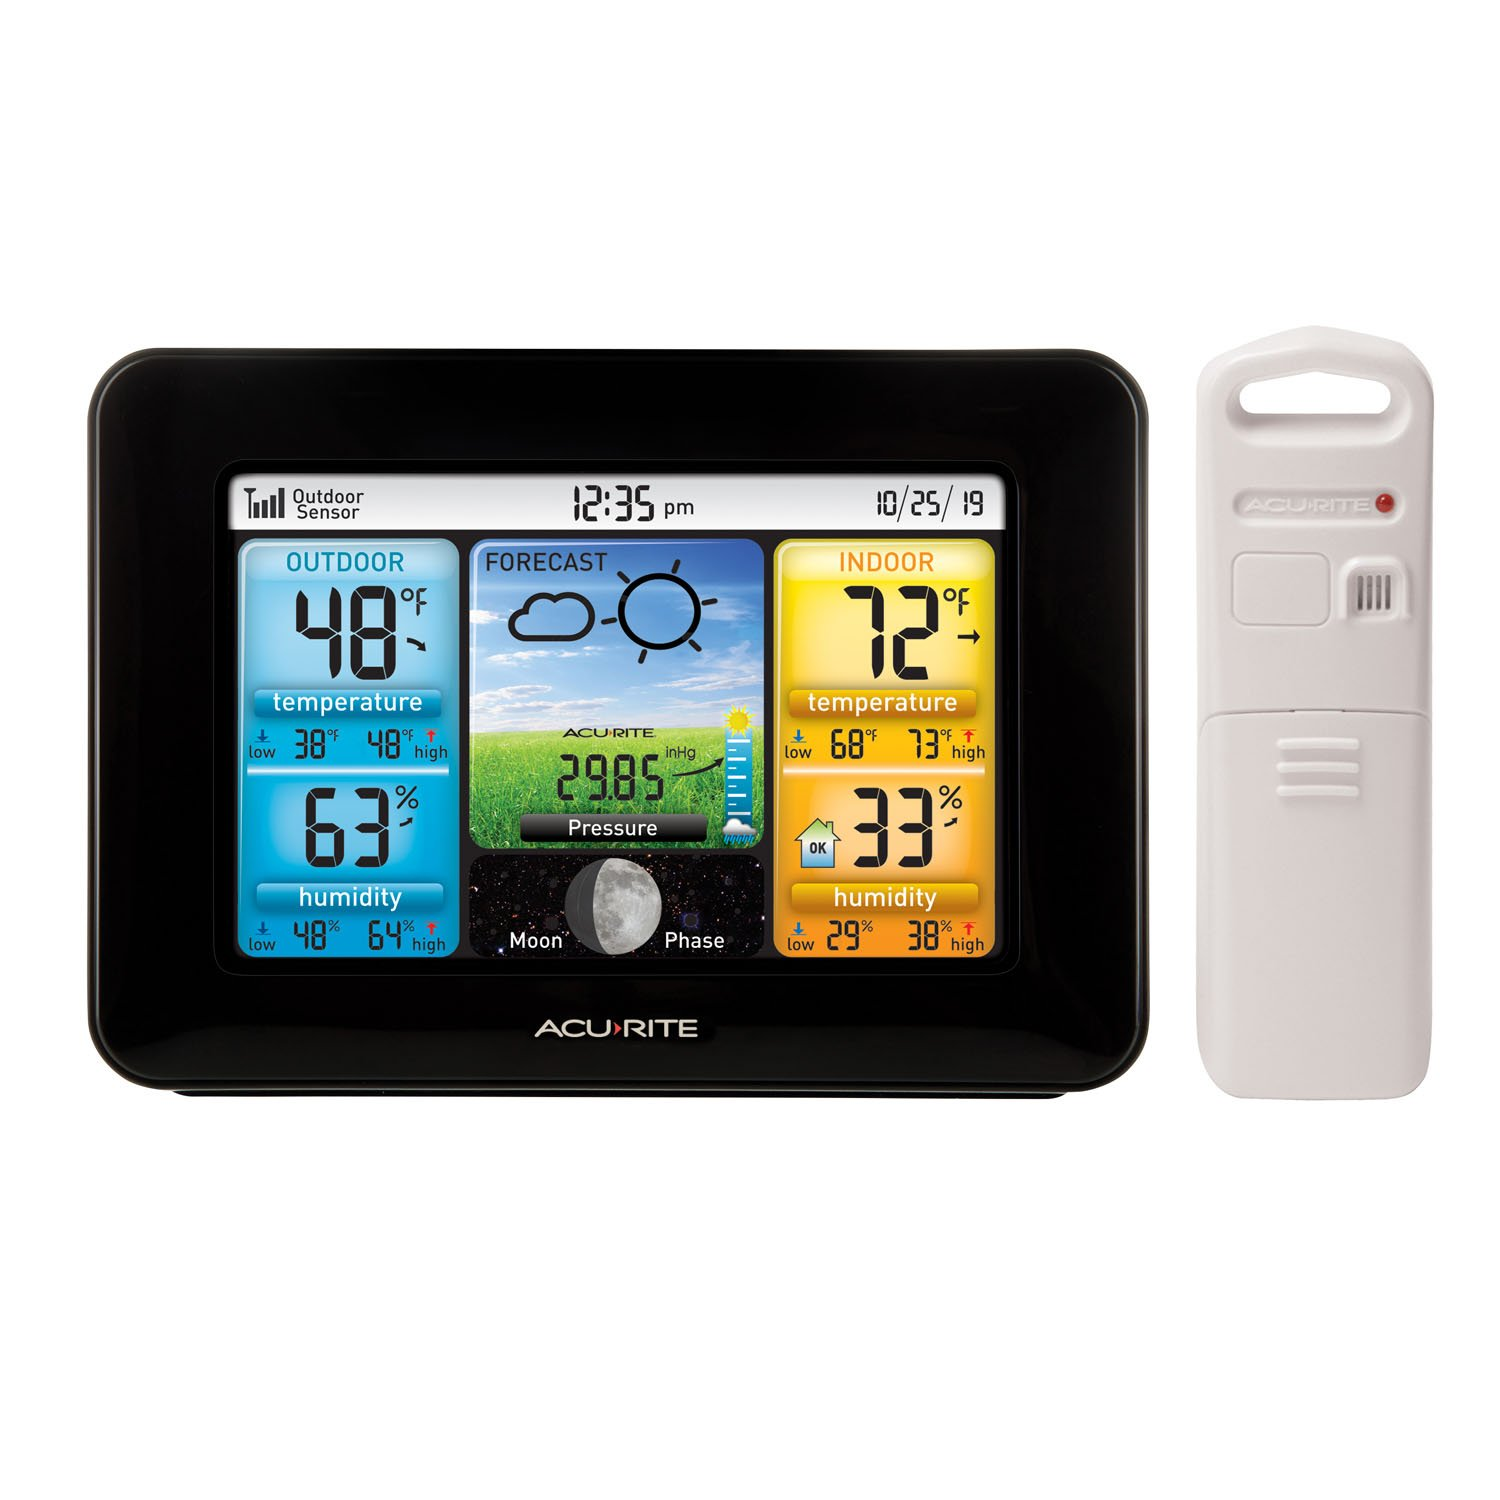 AcuRite 02077 Color Weather Station Forecaster with Temperature, Humidity, Black by AcuRite